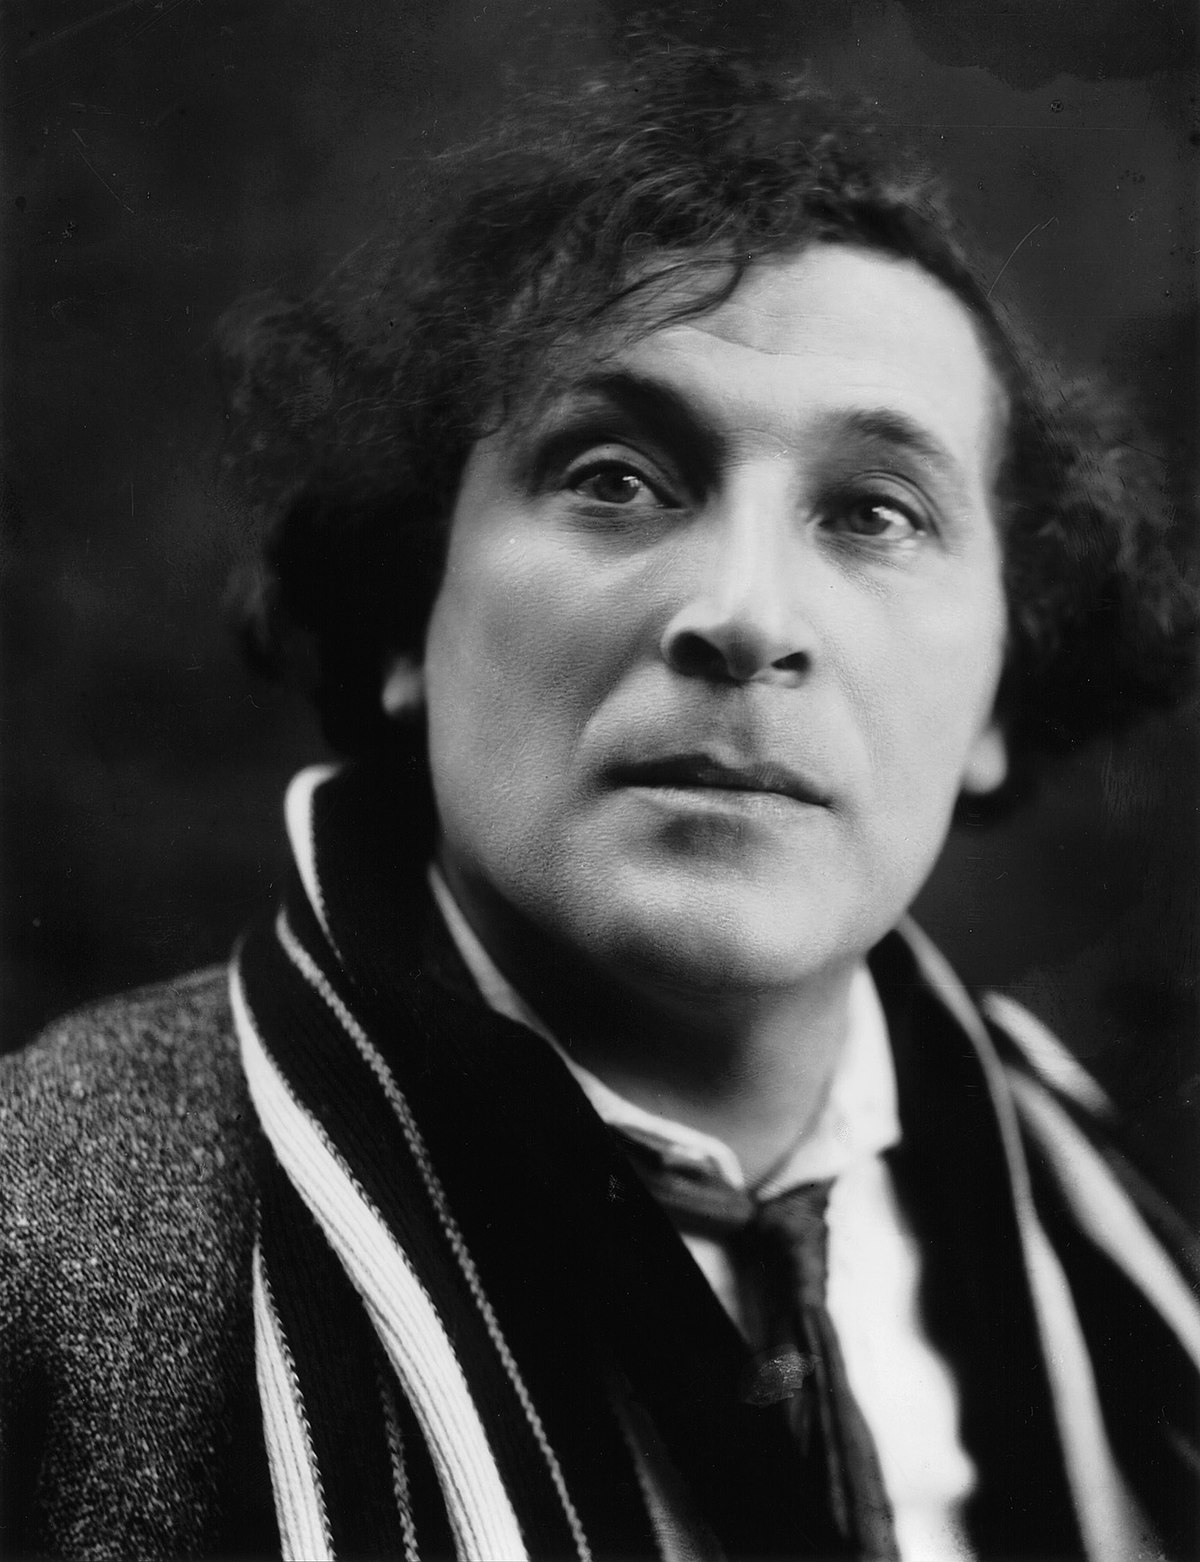 marc chagall 1944 : marc chagall quotes in french :  marc chagall odyssey lithographs en 2020/2021